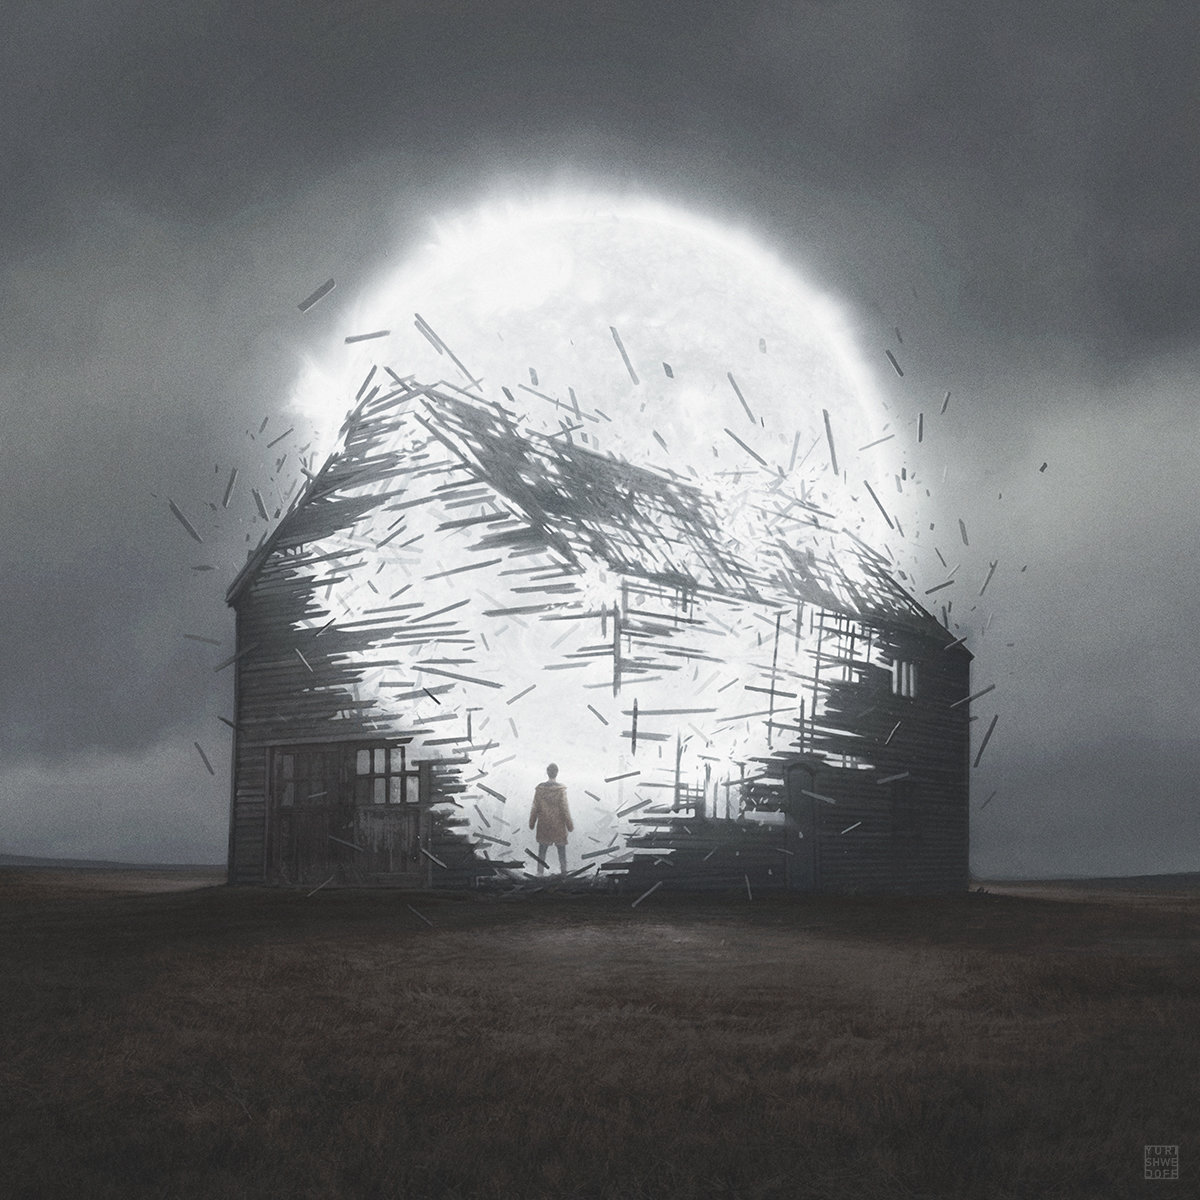 [Reflexion] Les oeuvres qui vous inspirent - Page 2 Yuri-shwedoff-star-internet